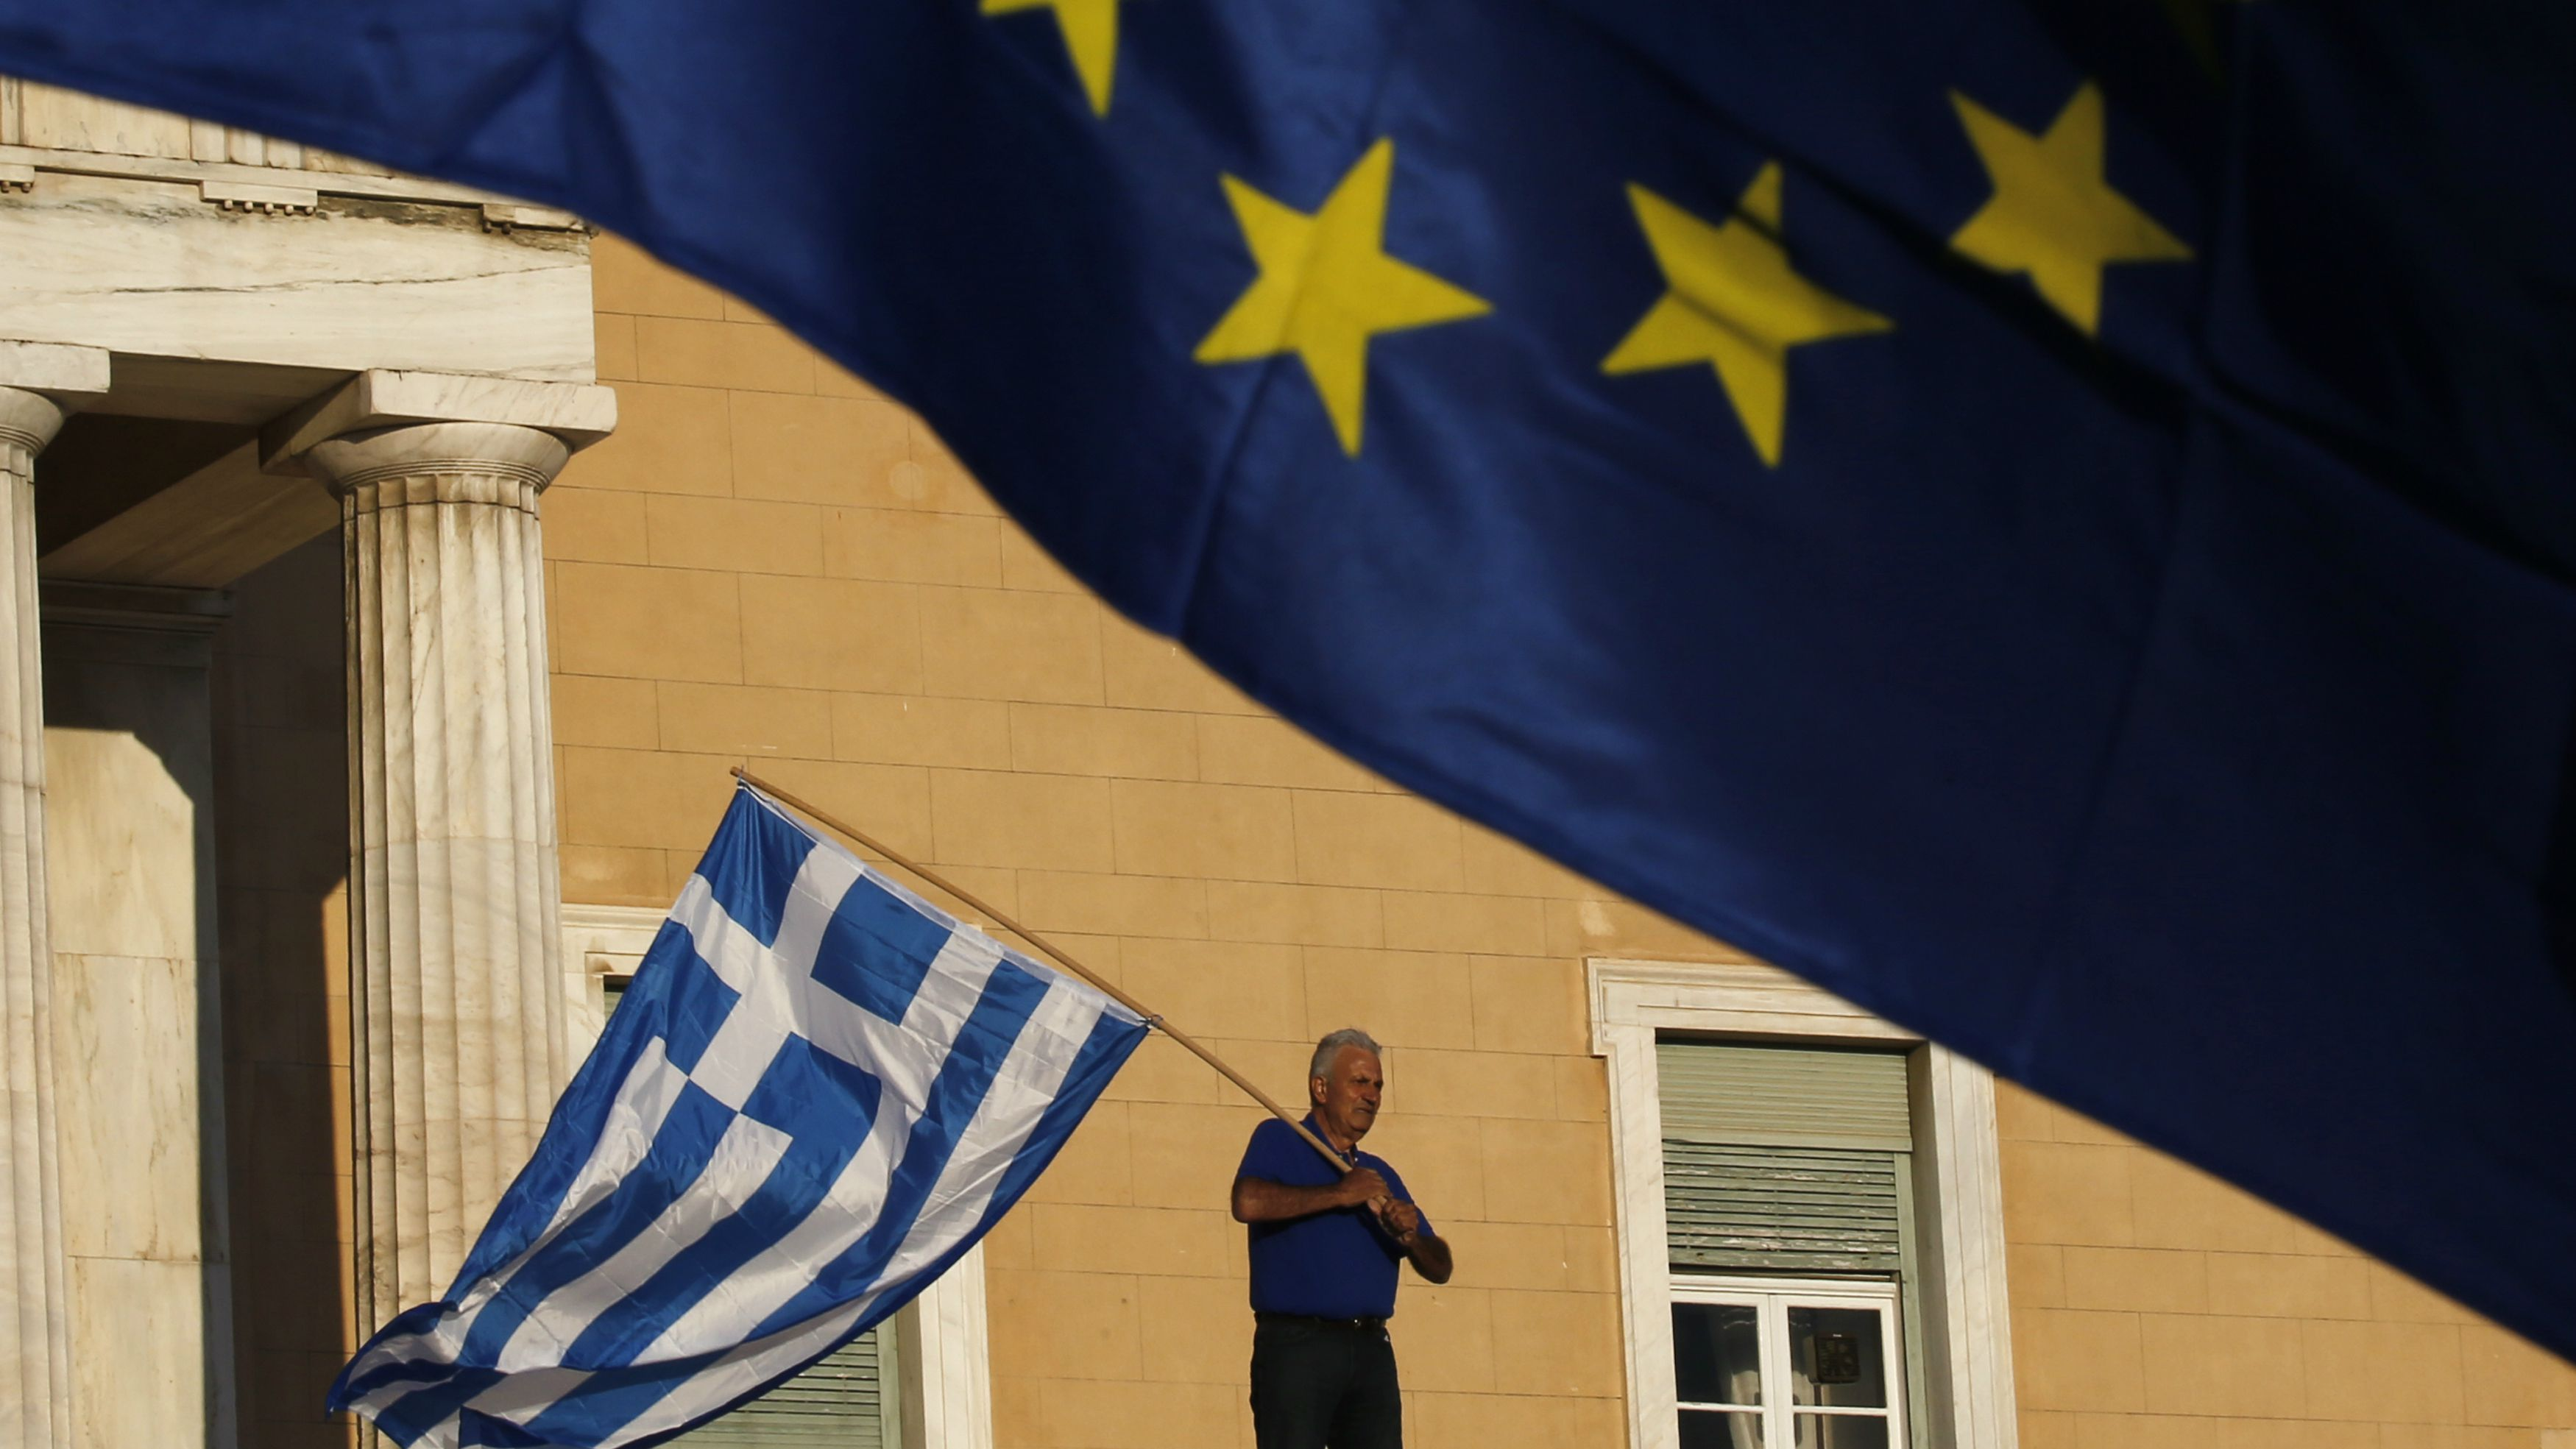 A protester waves a Greek flag at the entrance of the parliament building during a rally calling on the government to clinch a deal with its international creditors and secure Greece's future in the Eurozone, in Athens, Greece, June 22, 2015. Euro zone finance ministers welcomed new Greek proposals for a cash-for-reform deal on Monday but said they required detailed study and it would take several days to determine whether they can lead to an agreement to avert a default. REUTERS/Yannis Behrakis